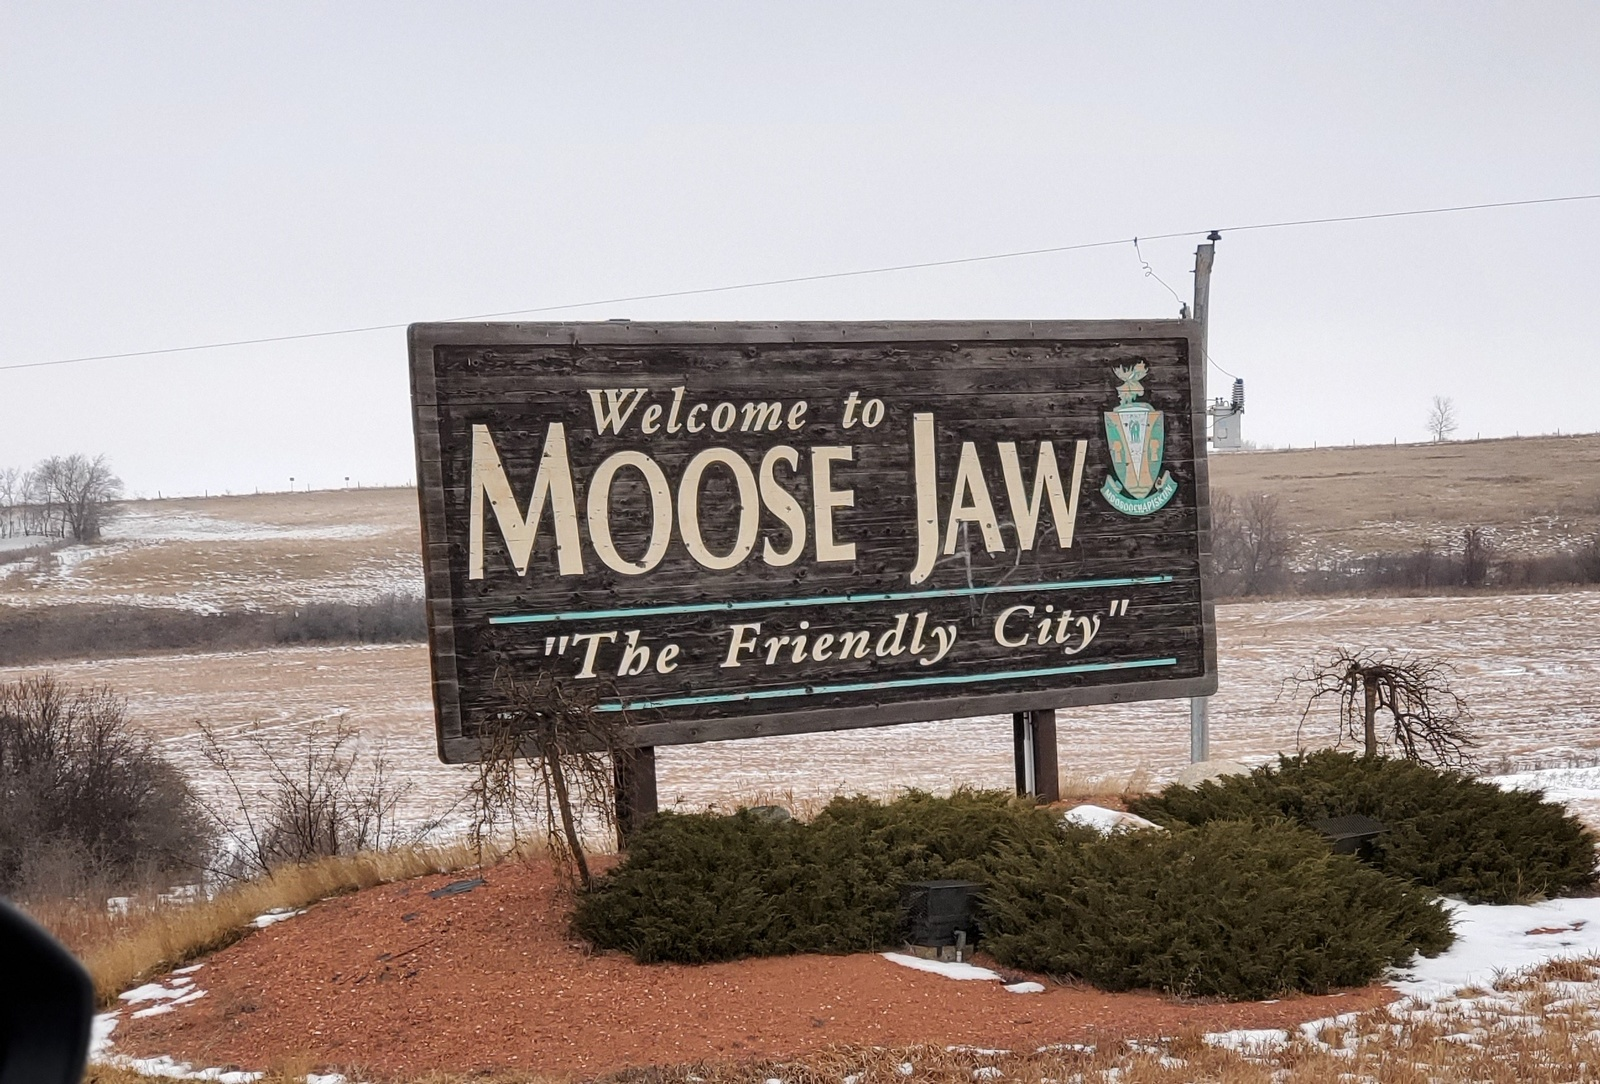 Moosejaw Sask. One of the RNIP (Rural and Northern Immigration Pilot Program) locations.